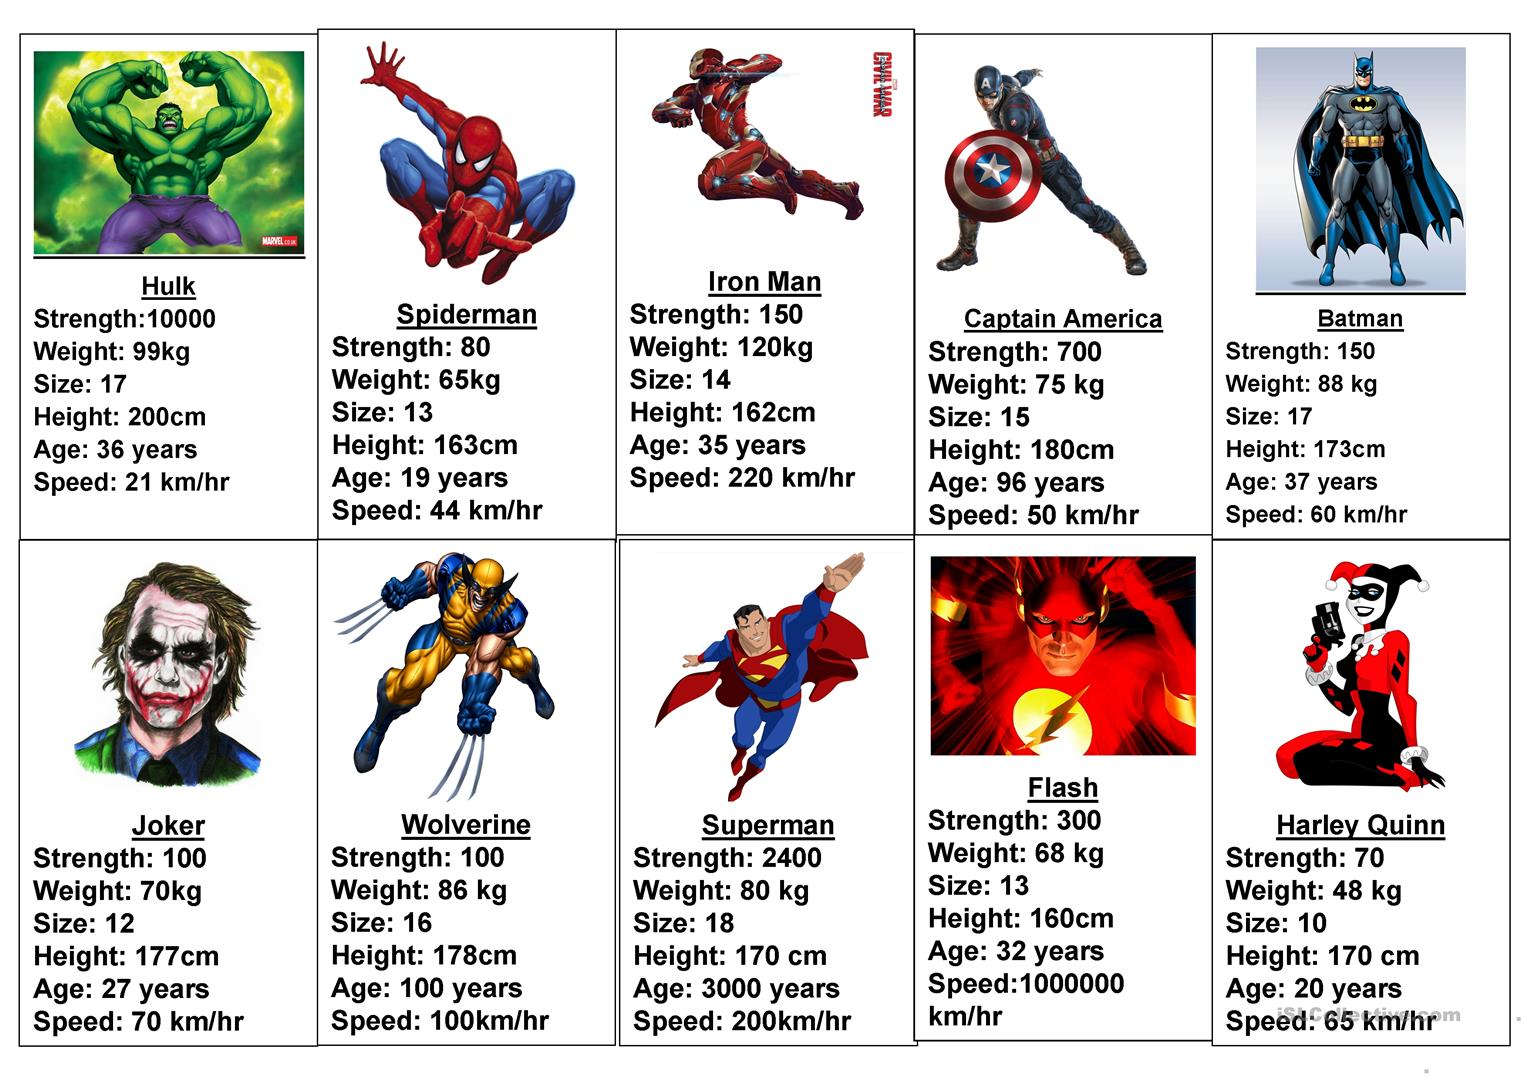 Comparative Superhero Game